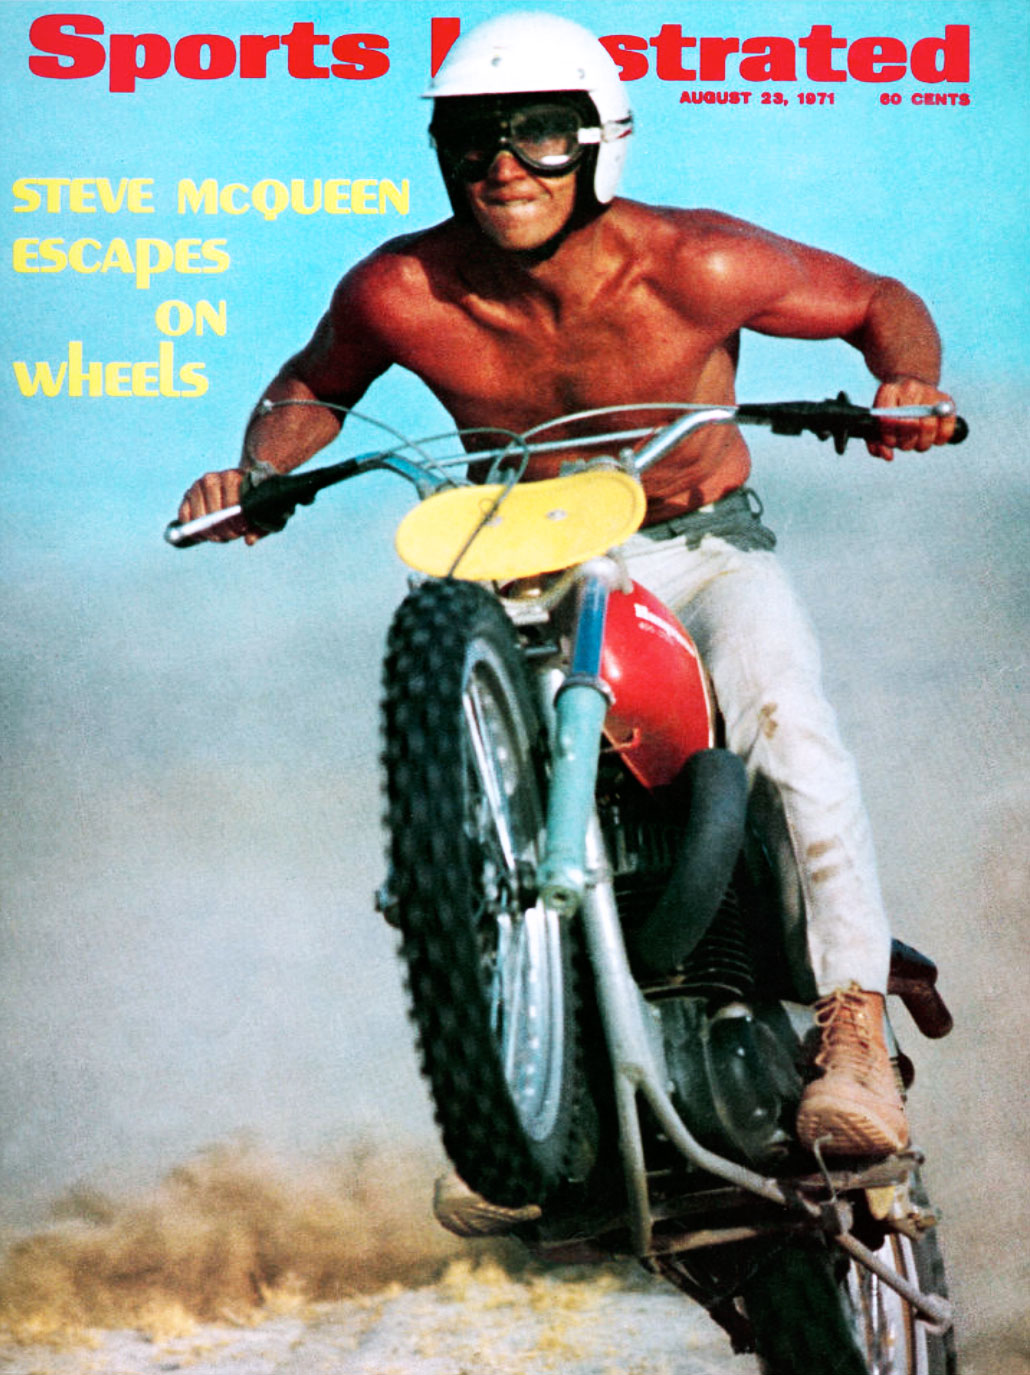 Steve McQueen Rolex Sports Illustrated Motorcycle Steve McQueen   Sports Illustrated